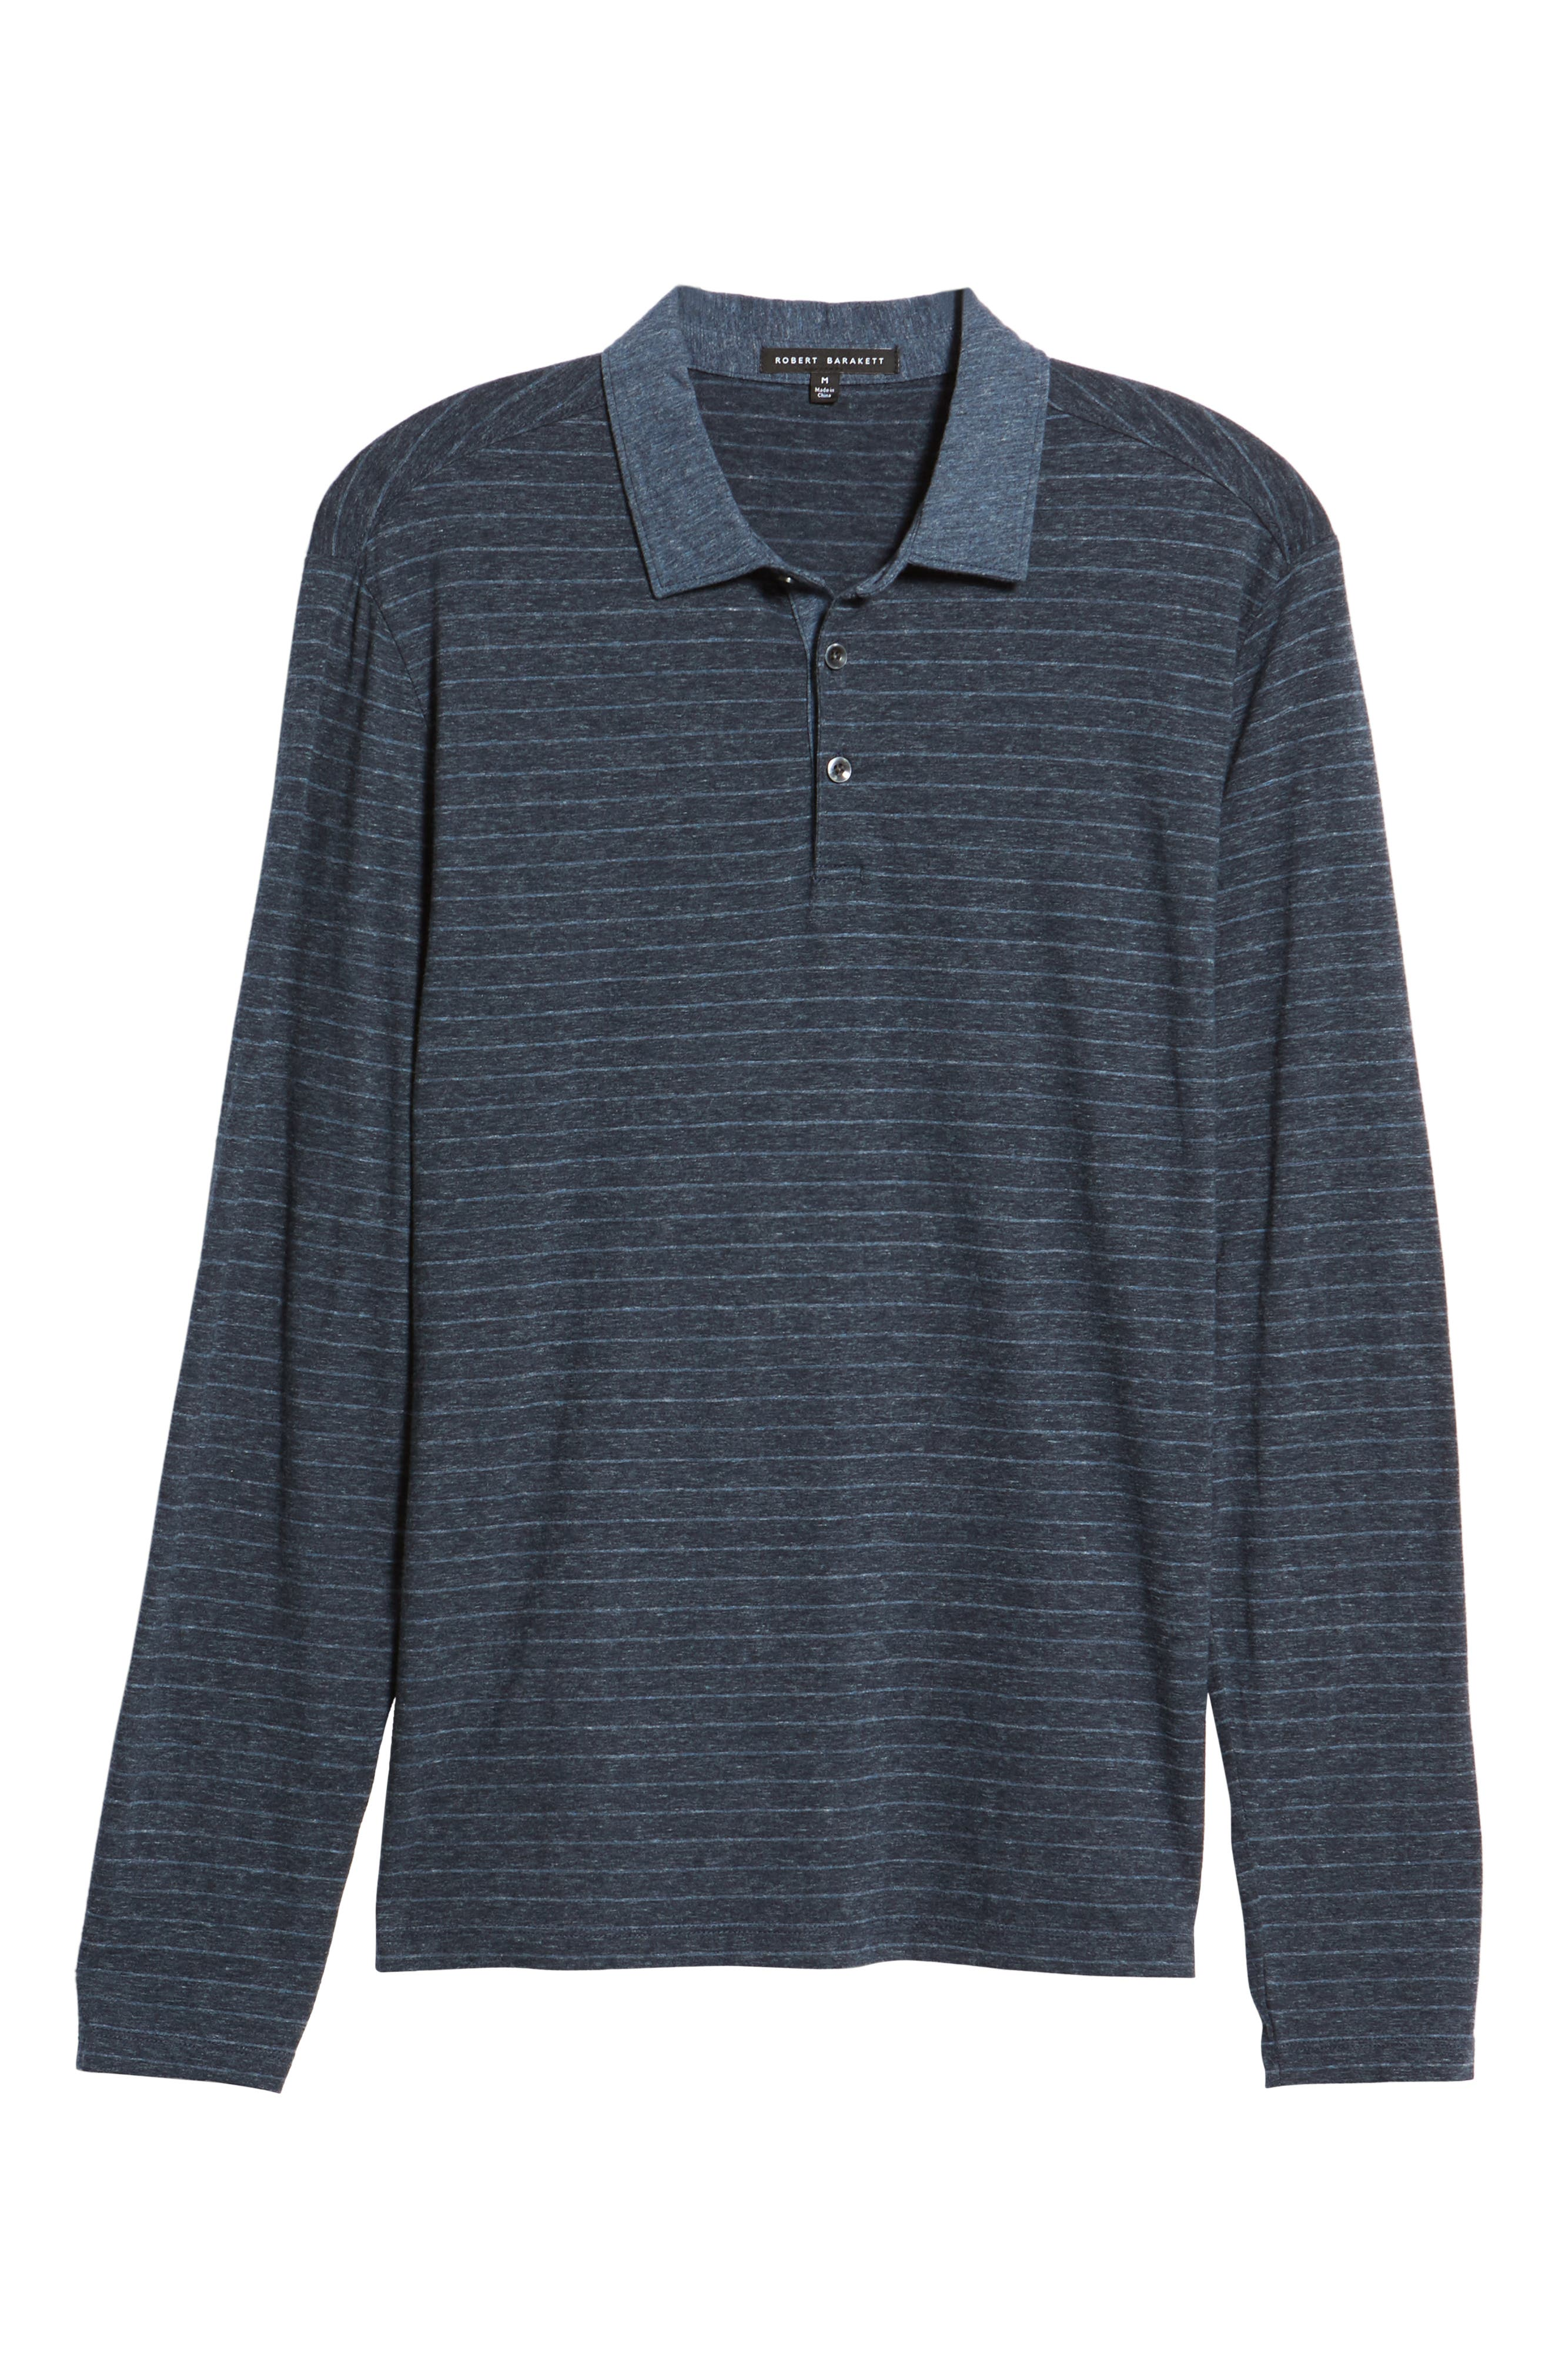 Wellington Regular Fit Long Sleeve Polo,                             Alternate thumbnail 6, color,                             NAVY